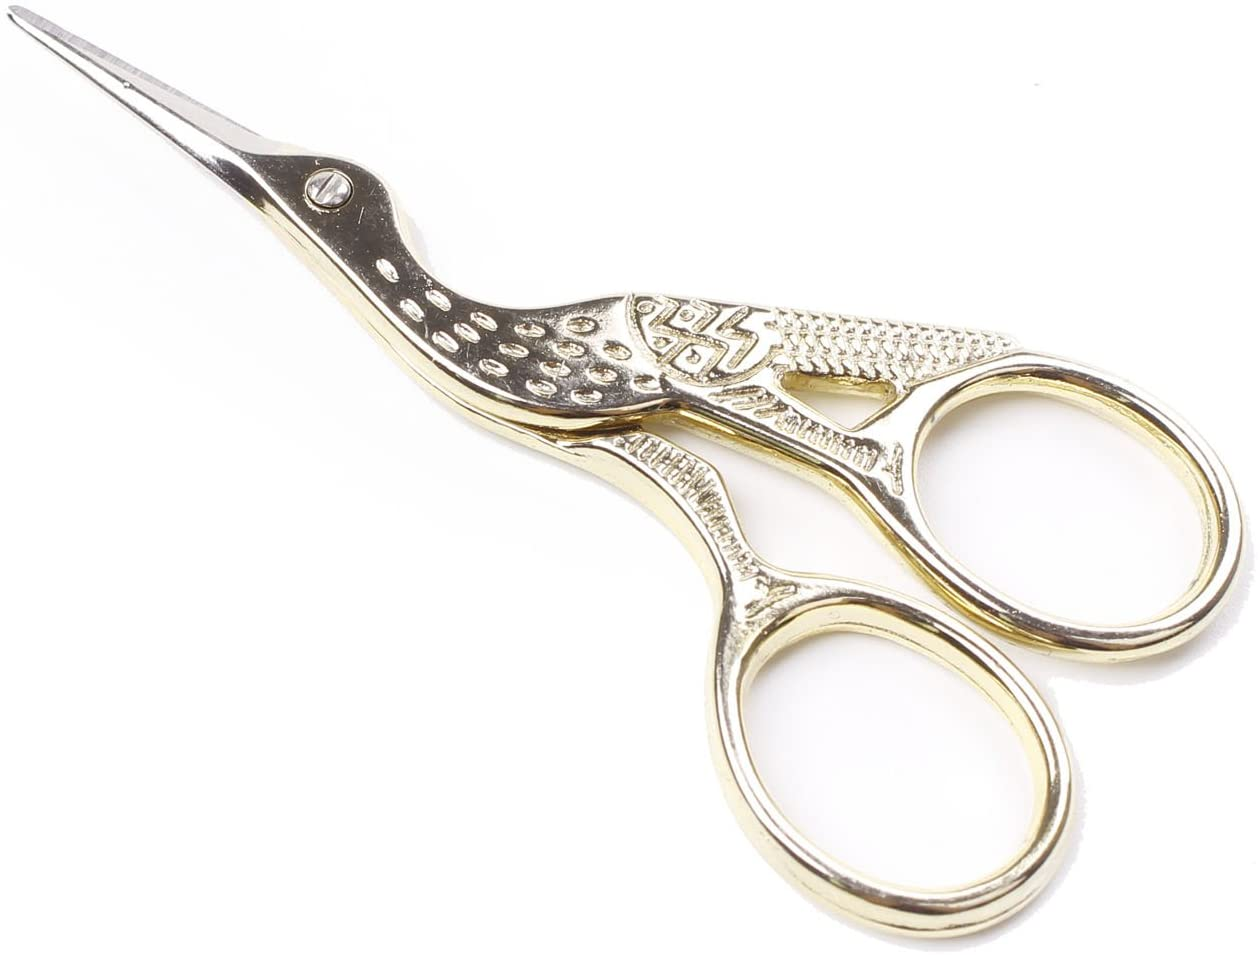 Stainless steel Stork-shaped Scissors for cutting yarn while knitting or crocheting.